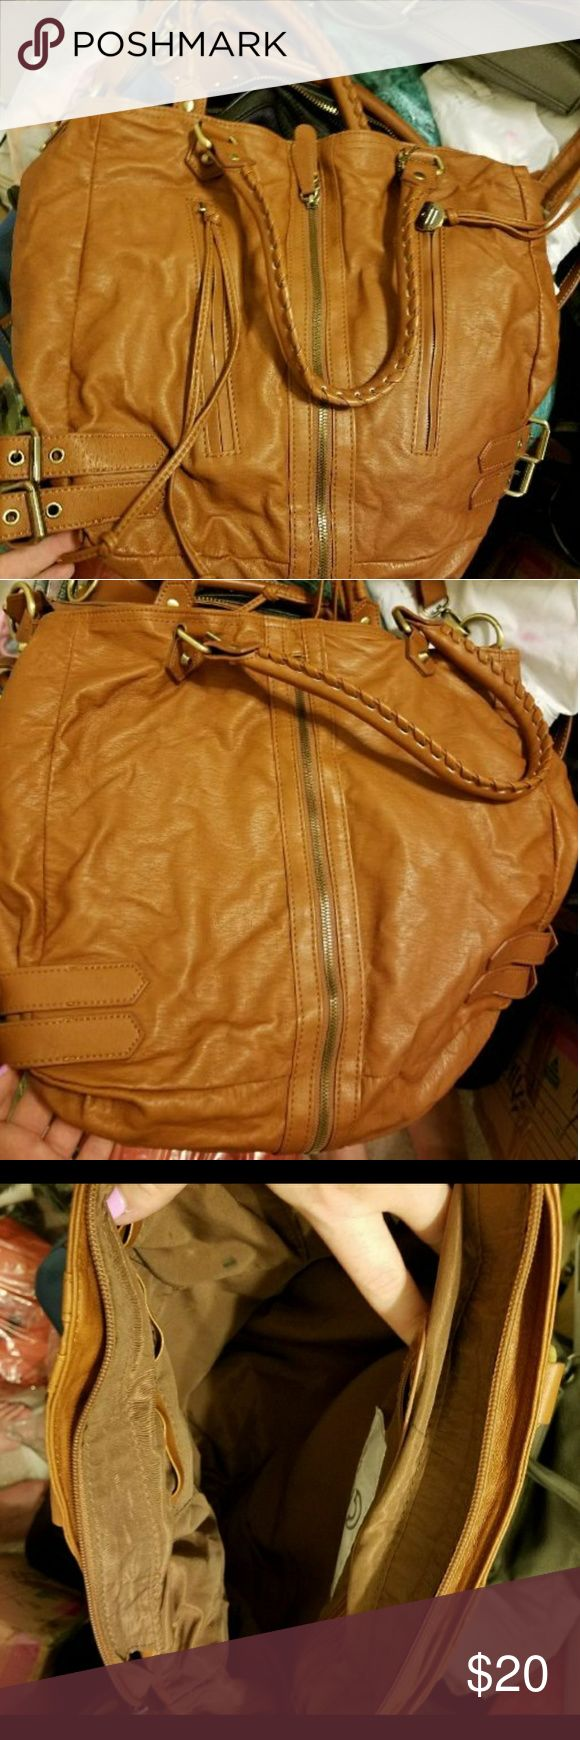 Big buddah brown purse Big buddah brown purse. Can be used as a shoulder bag or a crossbody. Long straps do come off. Has been used and has a lip gloss stain on one of the pockets on the inside. Big Buddha Bags Shoulder Bags